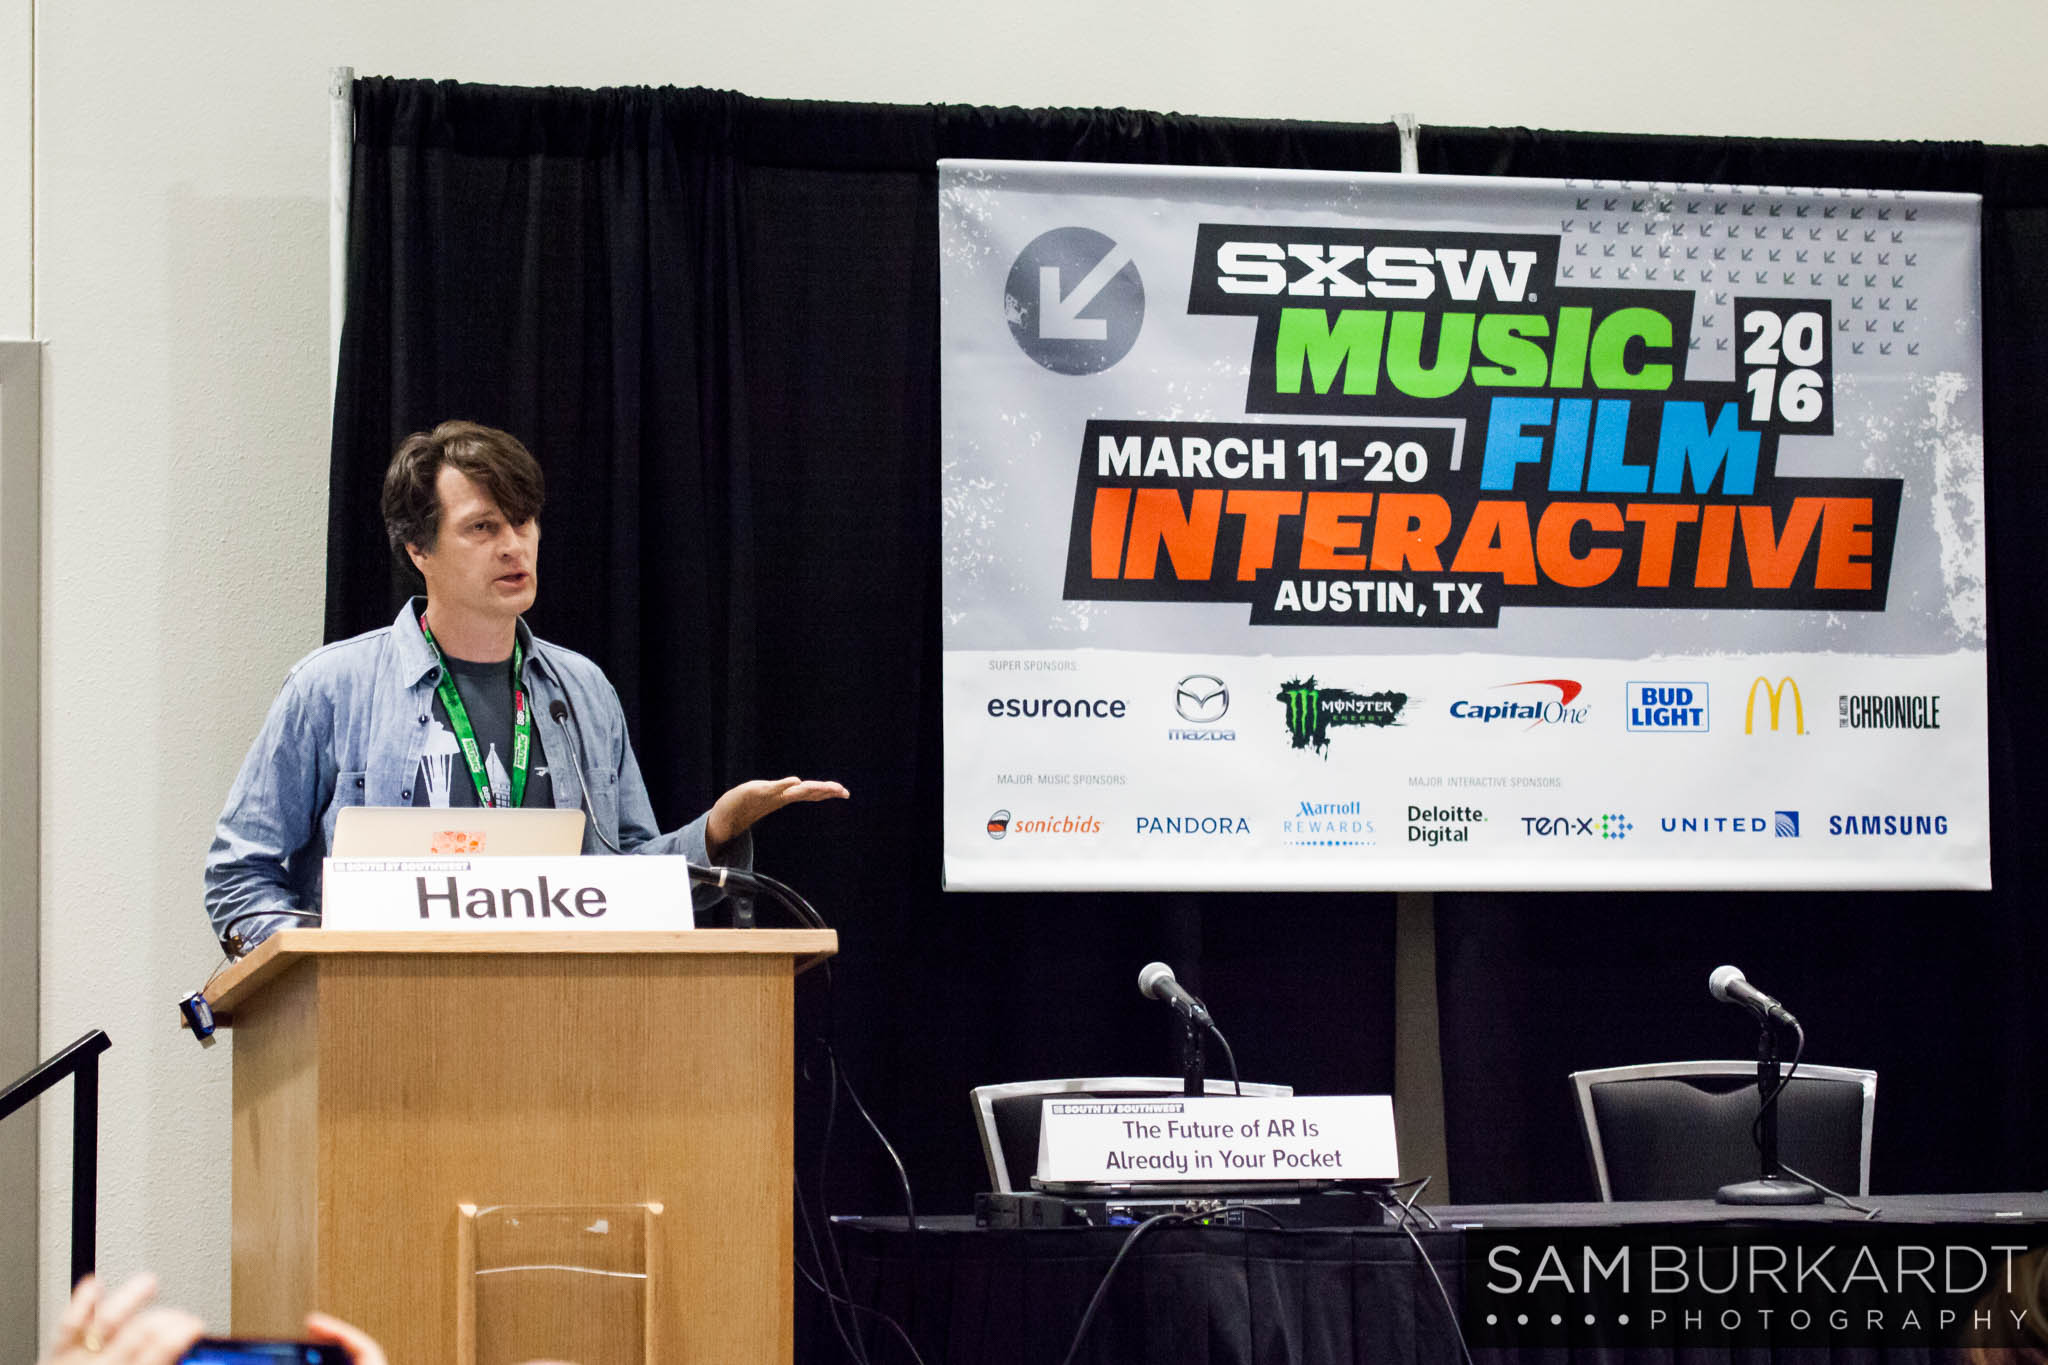 Pokemon Go announcement at SXSW 2016